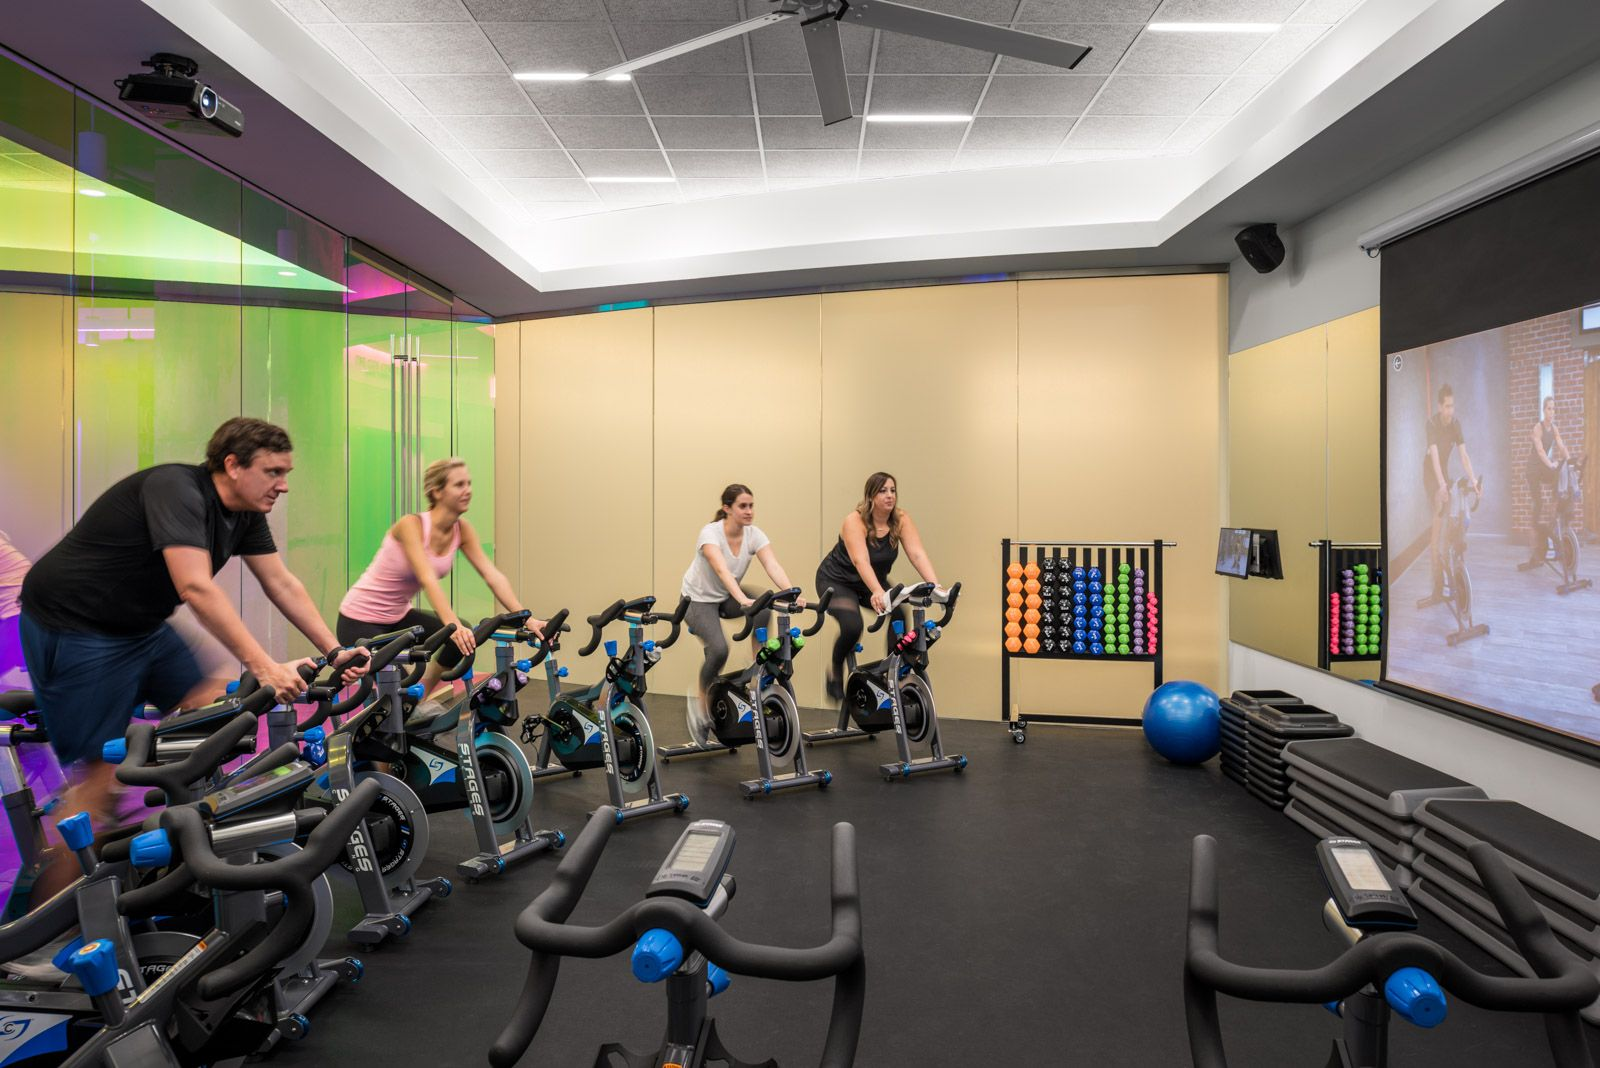 1000 Main Houston Texas 1000main Downtown Mainstreet Fitness Gym Bicycle Cycling Training Weightlifting Gym Design Gym Workouts Strength Training